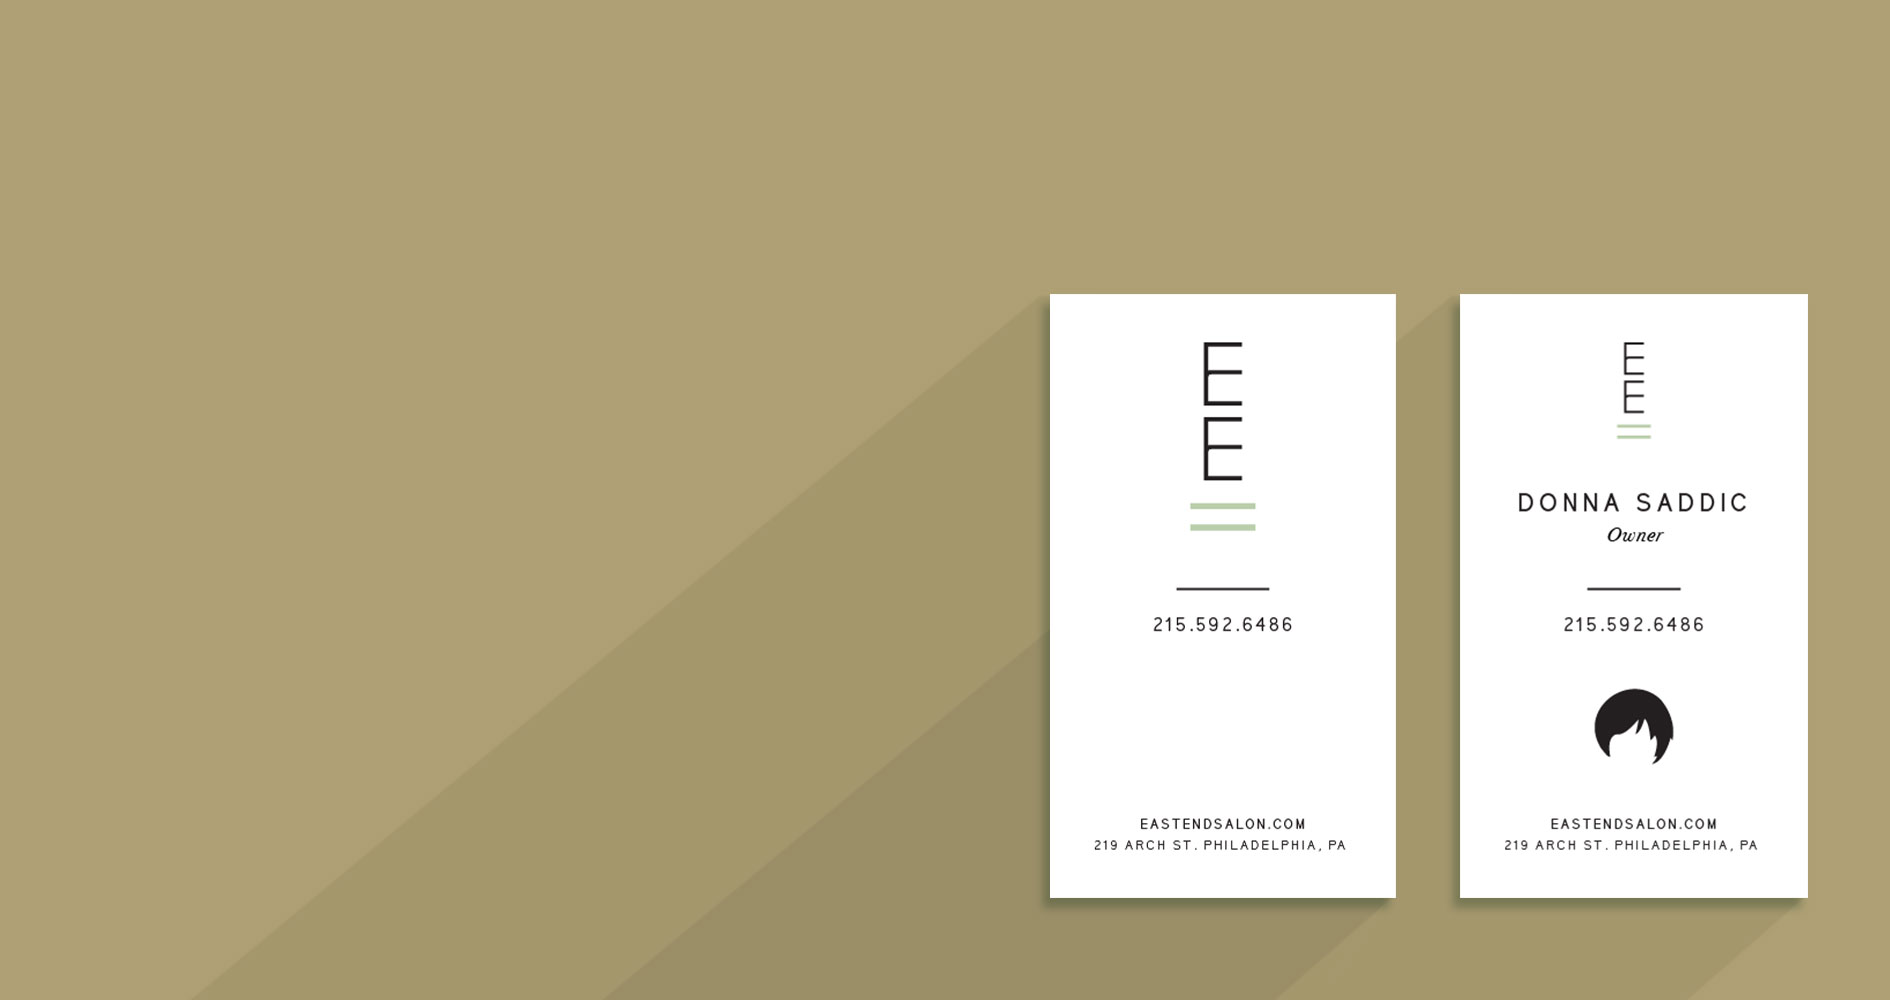 Philadelphia Business Card Design